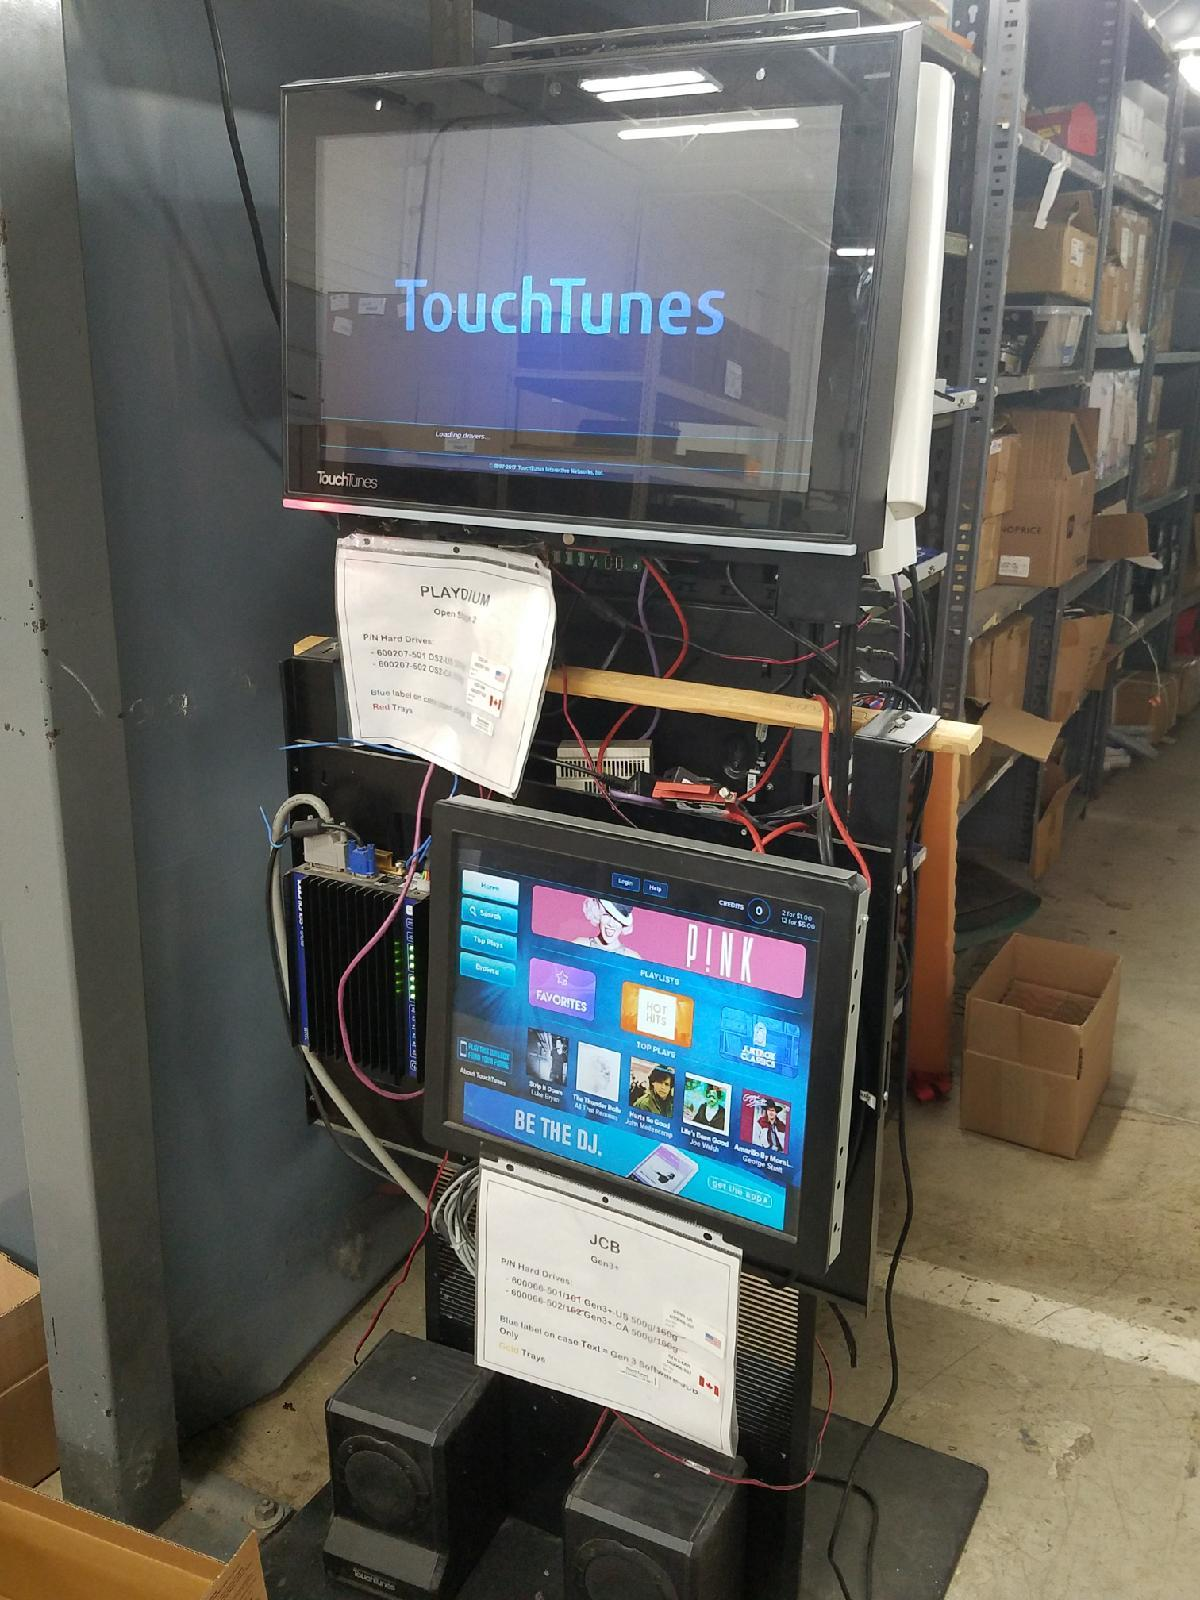 digital media client test fixture that Advanced Technical Services uses to test digital kiosks